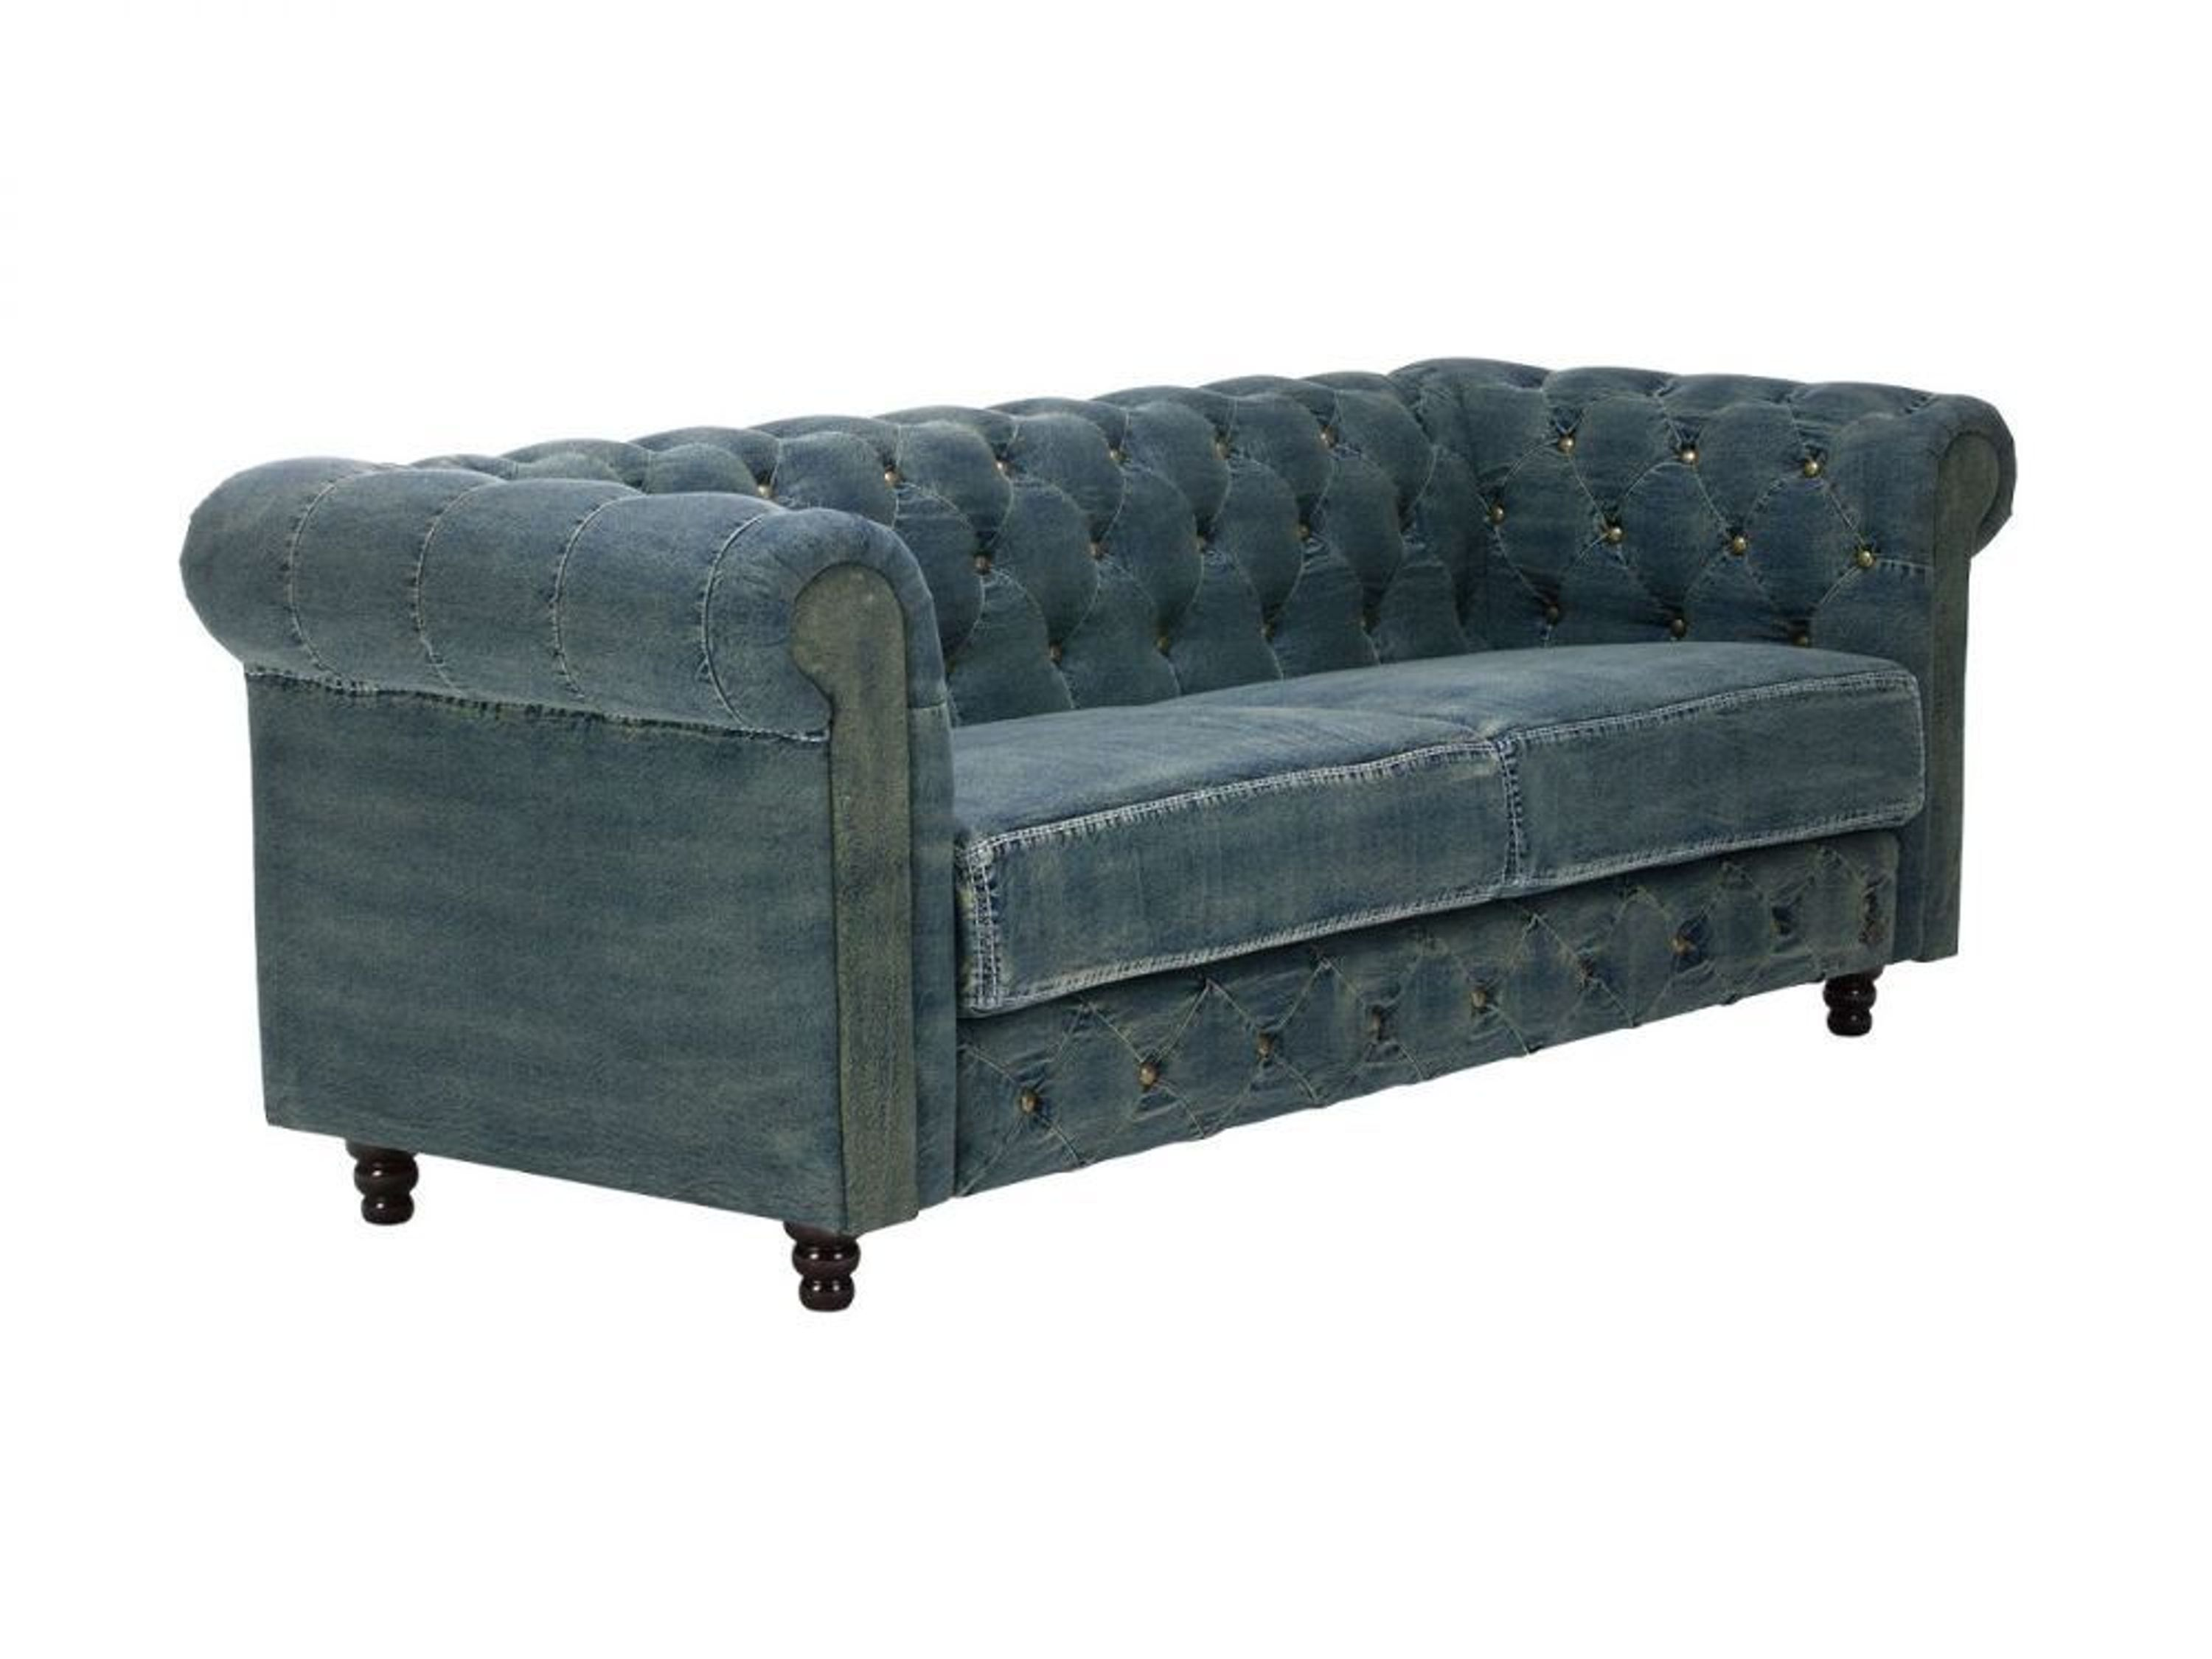 chesterfield sofa 3 sitzer vintage jeans blau stoff couch sitzm bel neu kaufen bei. Black Bedroom Furniture Sets. Home Design Ideas